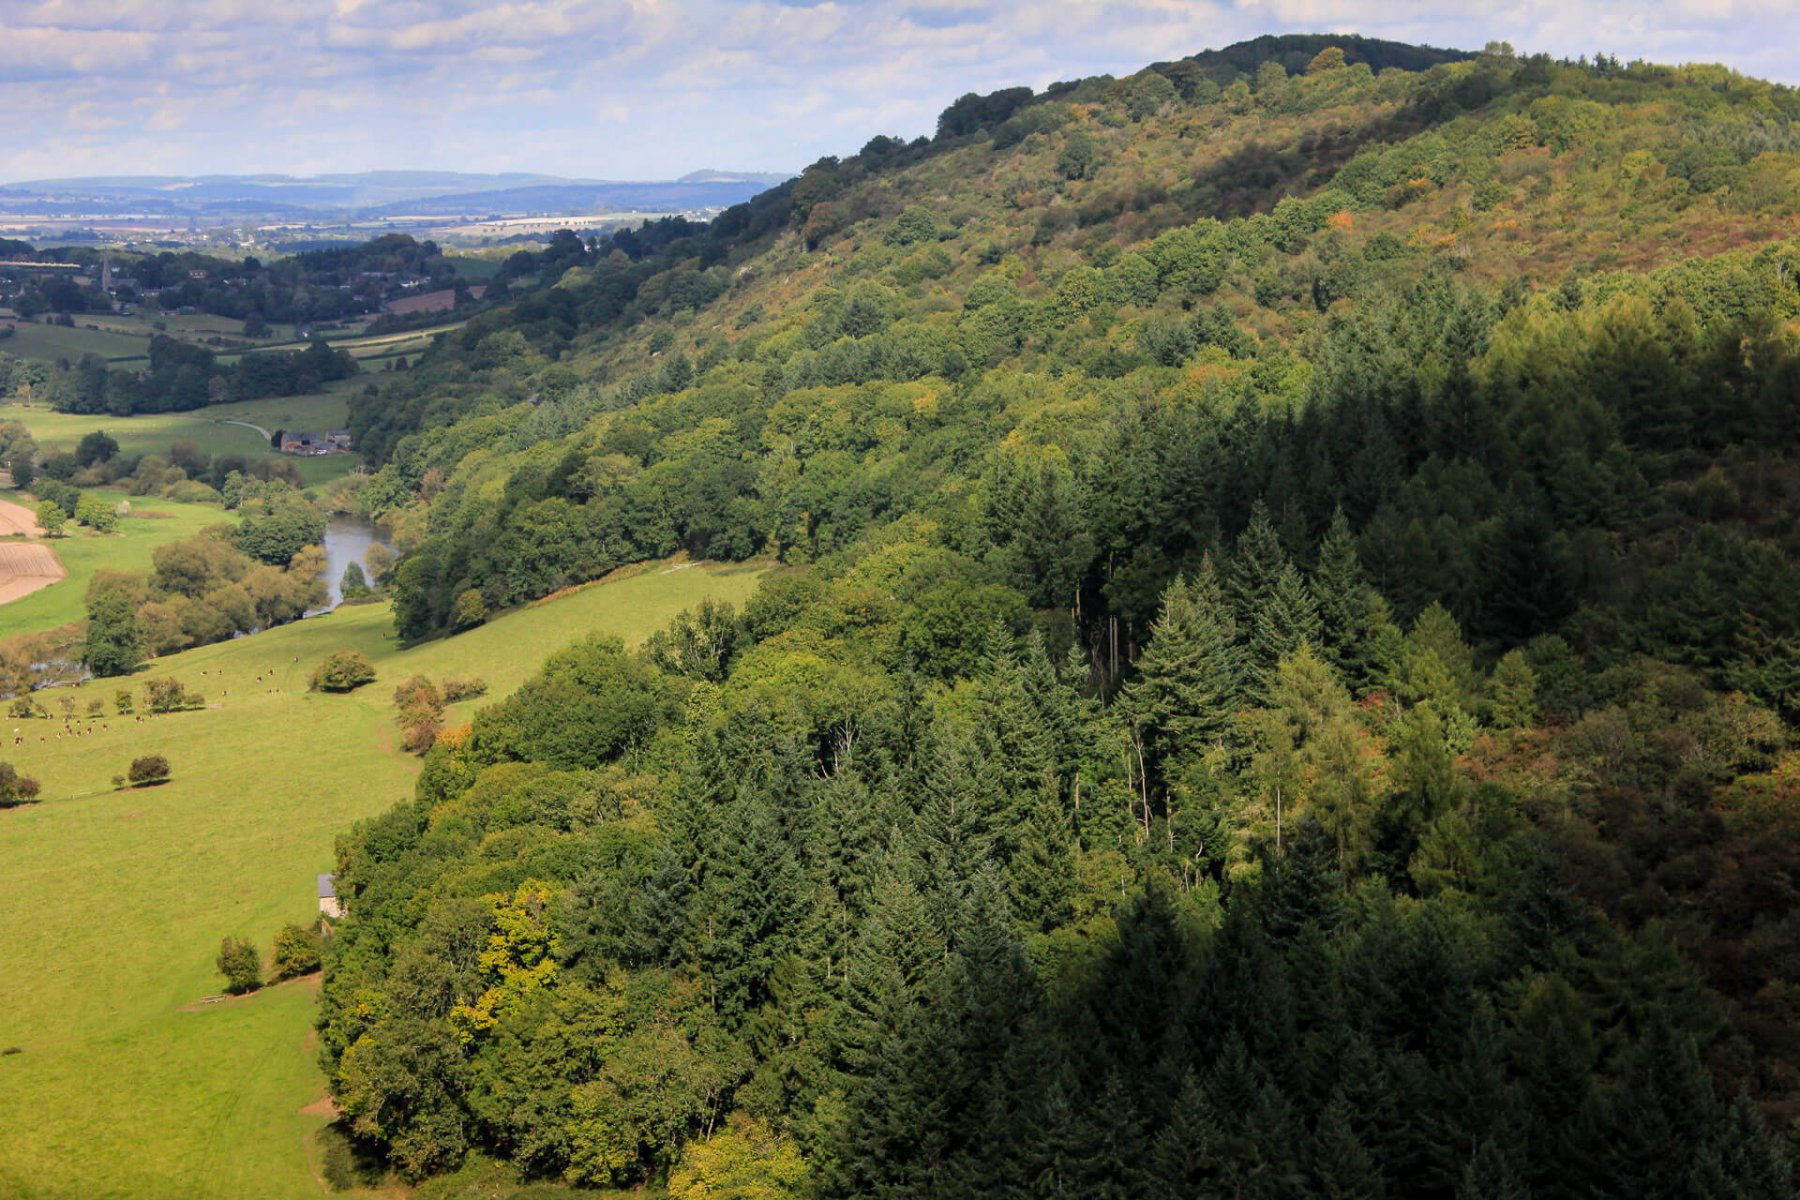 woodlands-where-peregrine-falcons-are-spotted-wye-valley